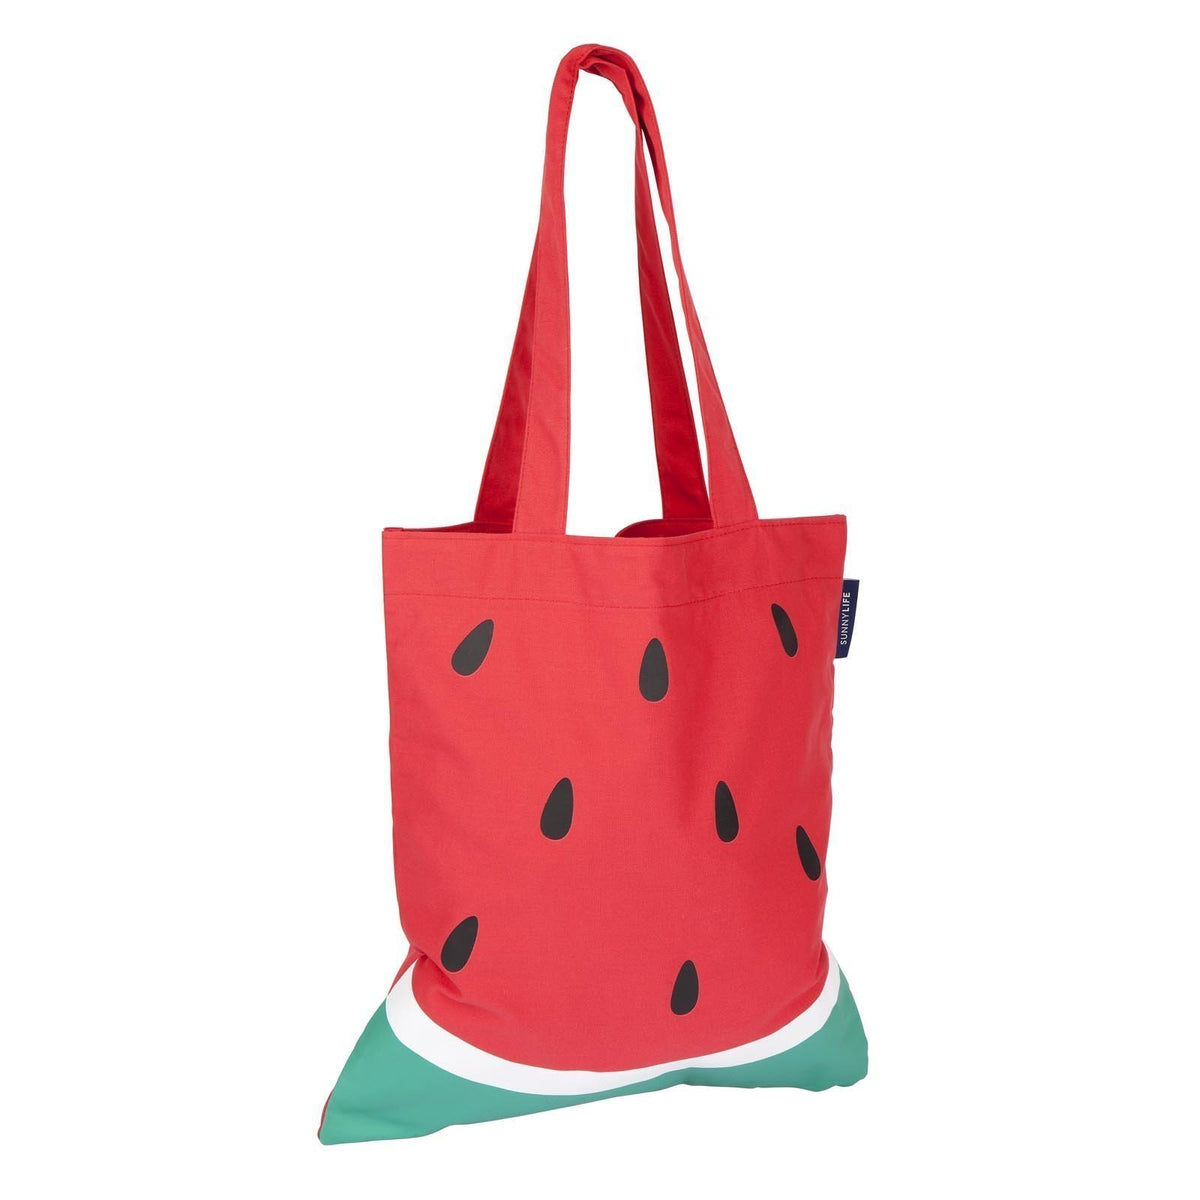 Sunnylife | Tote Bag | Watermelon